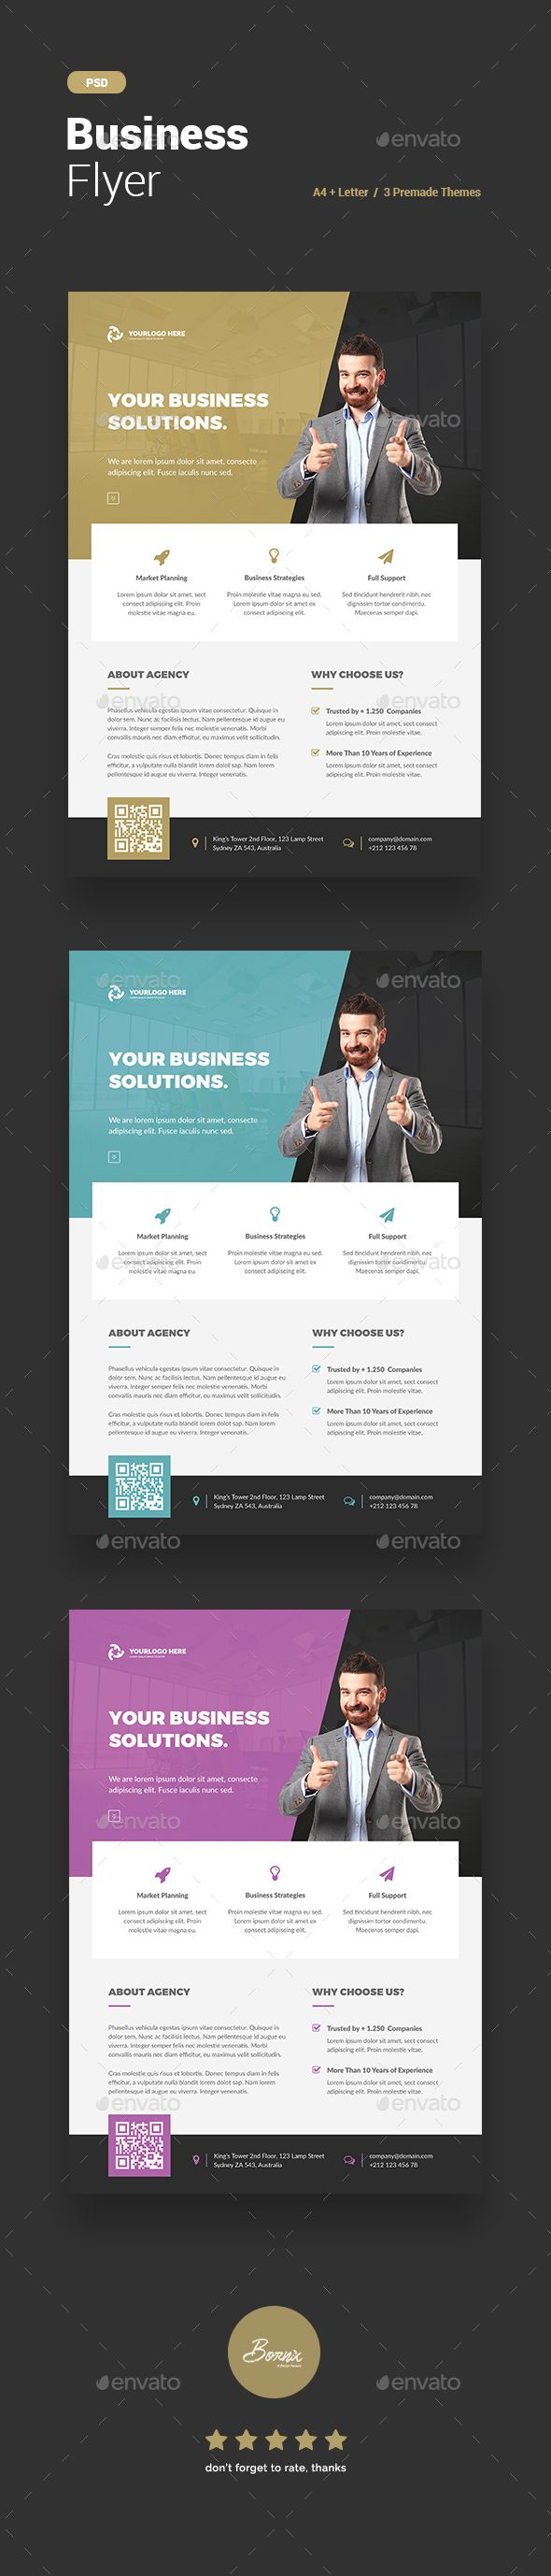 Corporate Business Flyer Design Template - Corporate Flyer Template PSD. Download here: https://graphicriver.net/item/business-flyer/17385904?ref=yinkira